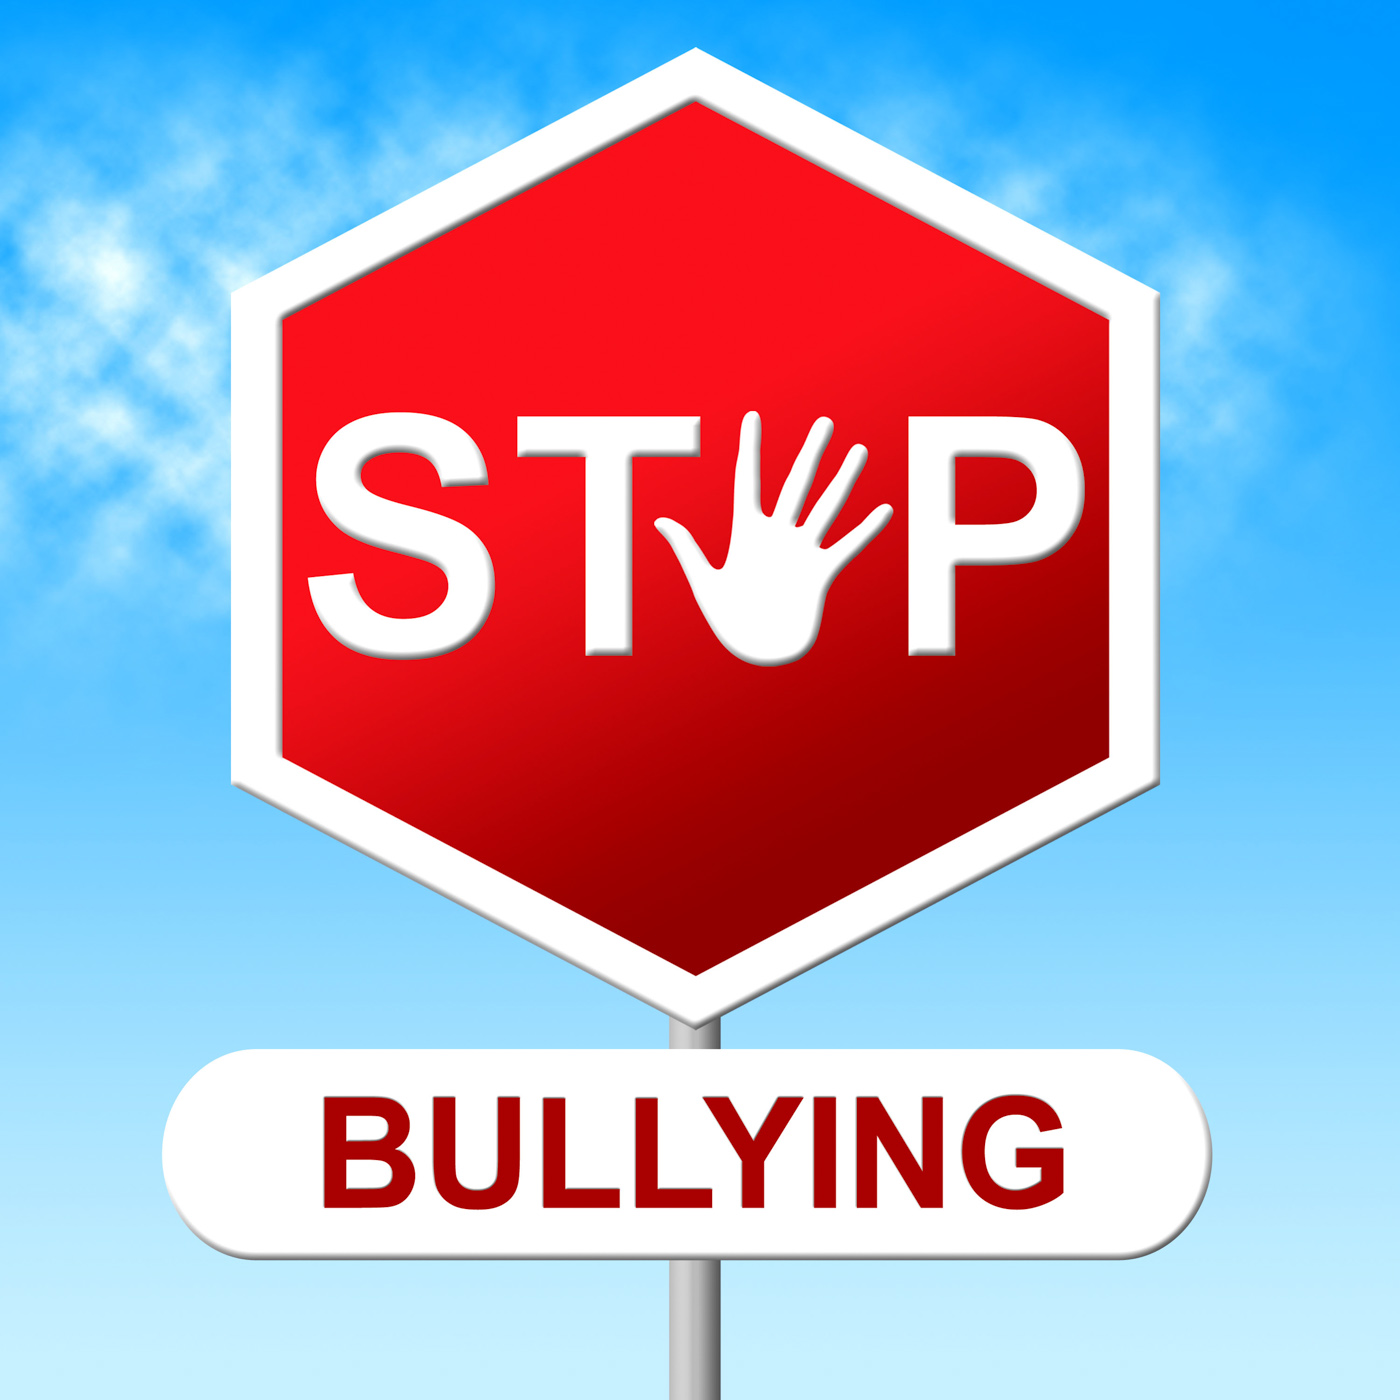 Stop bullying shows warning sign and danger photo